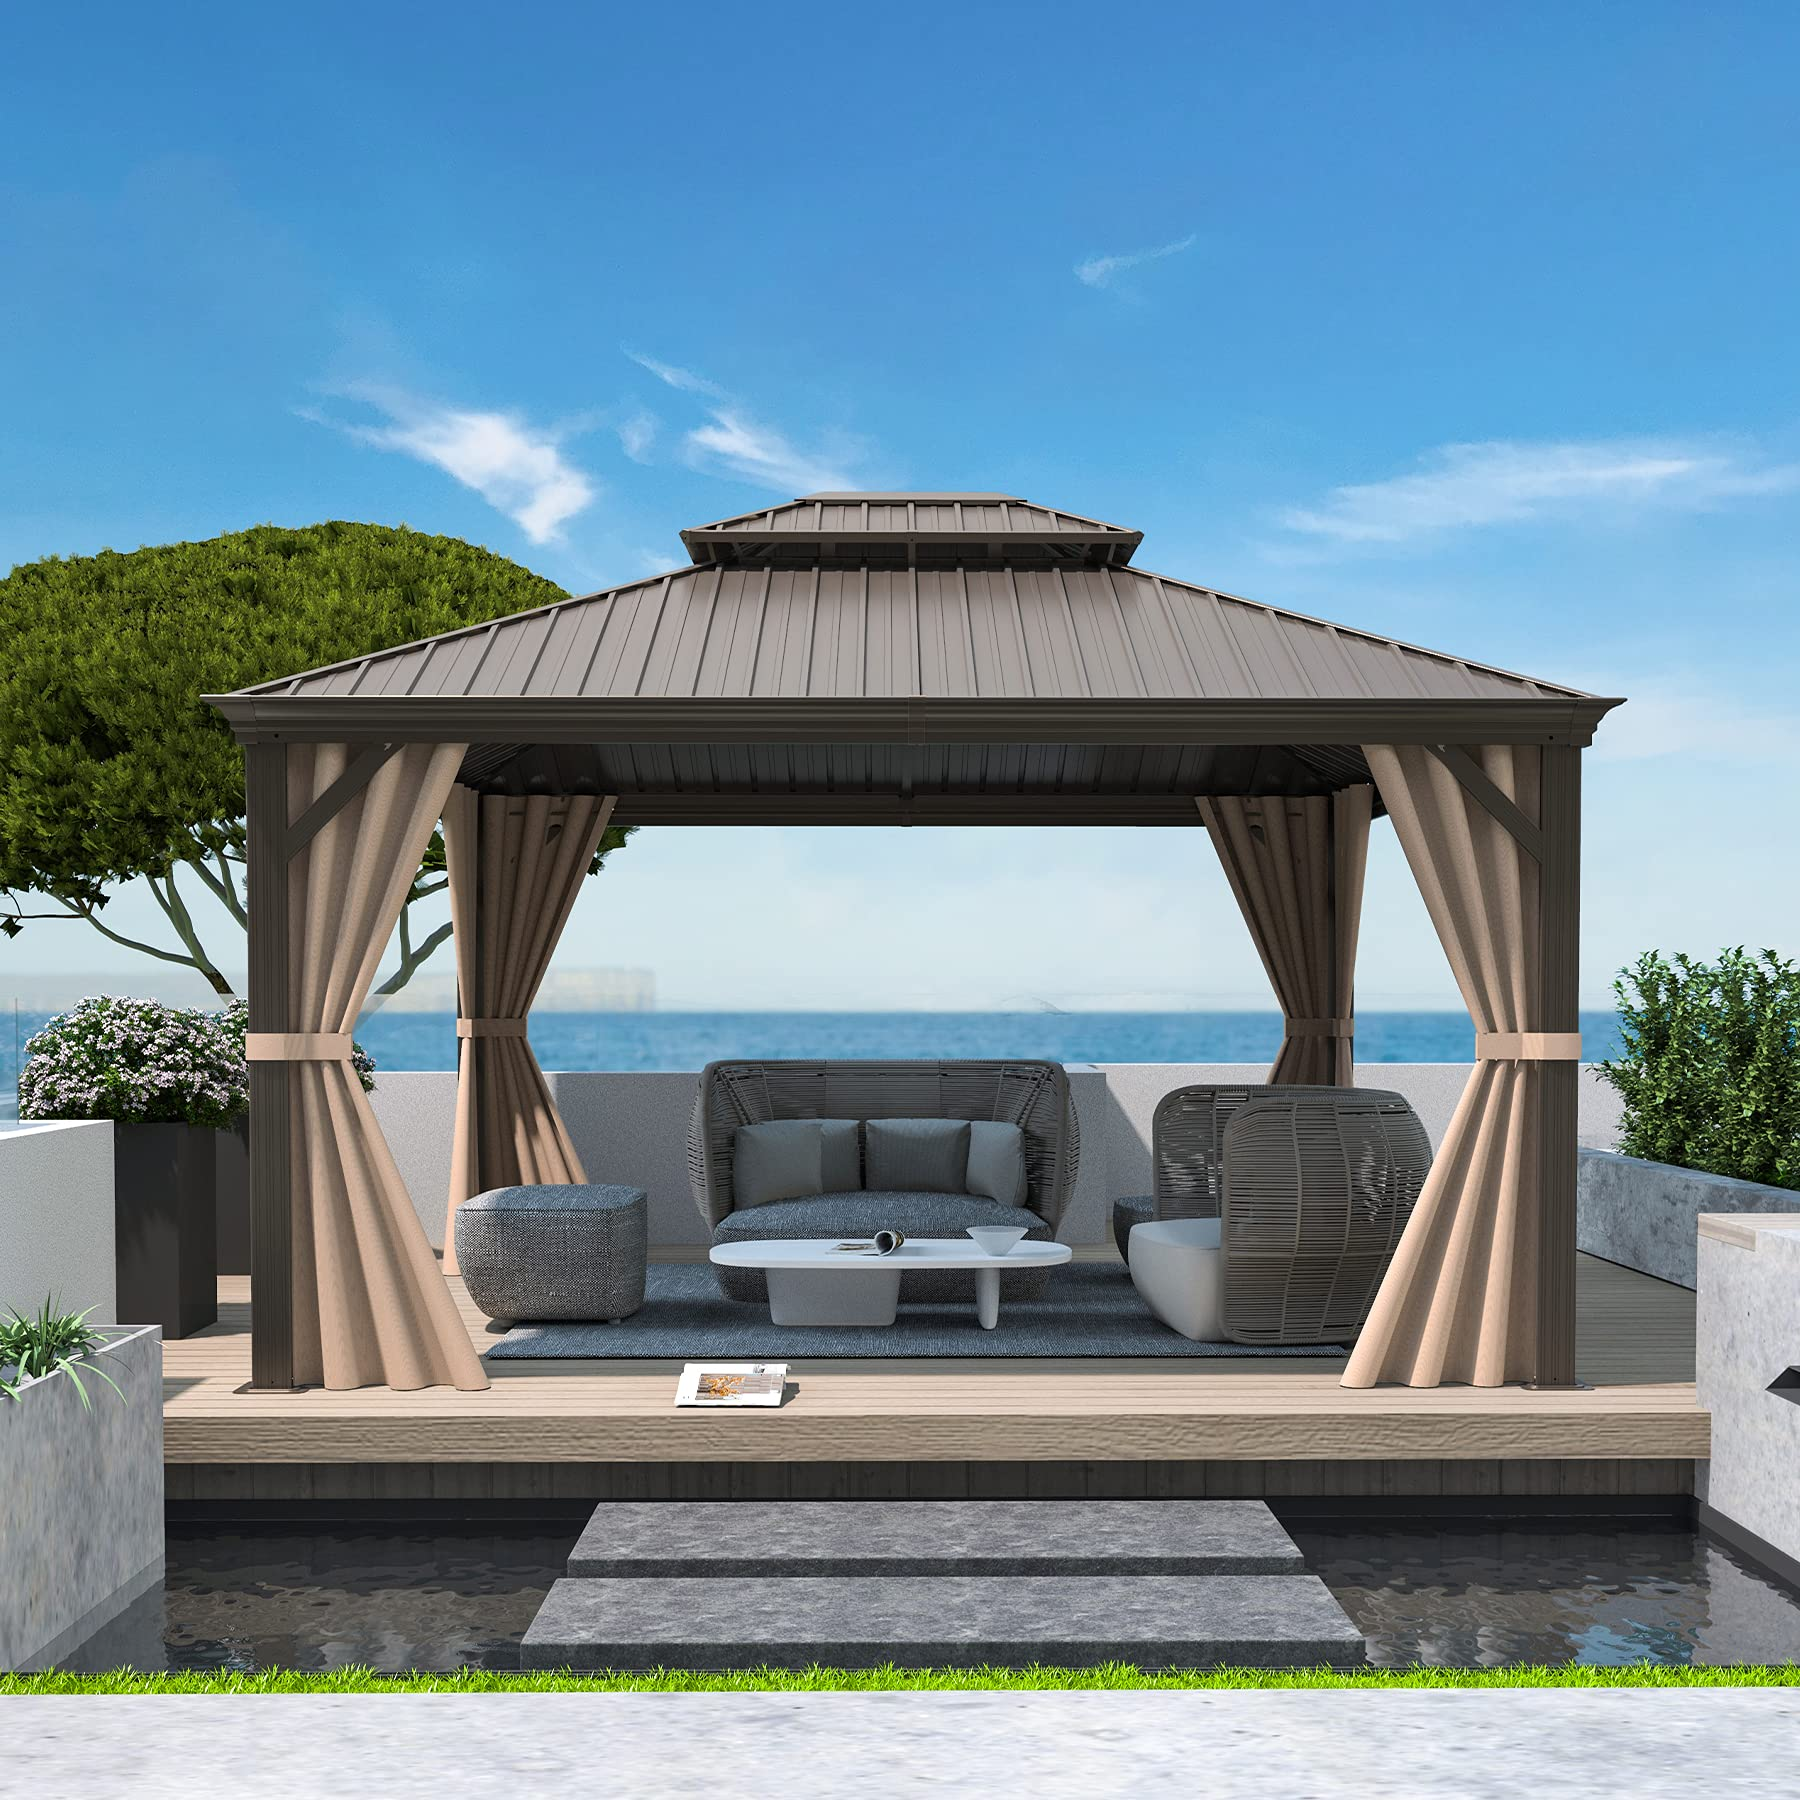 Sponsored Ad - 10'x12' Outdoor Hardtop Gazebo with Double roof,for patios,Backyard,lawns,Garden,Pool Sides,by domi outdoor...